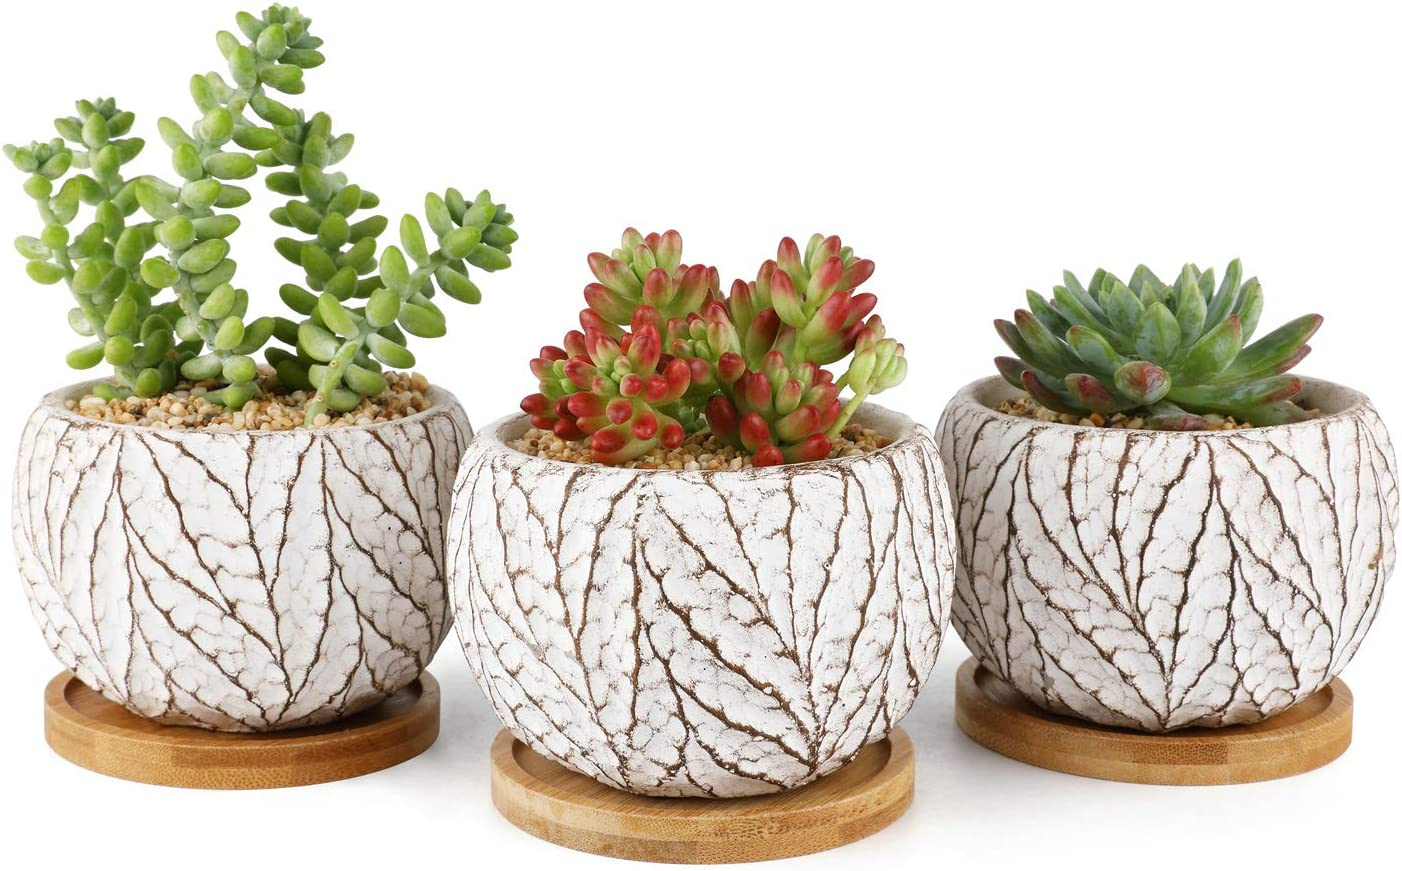 T4U 4 Inch Cement Succulent Plant Pot with Tray, Small Concrete Cactus Flower Planter Set of 3, Leaf Pattern Indoor Succulent Bowl for Home Office